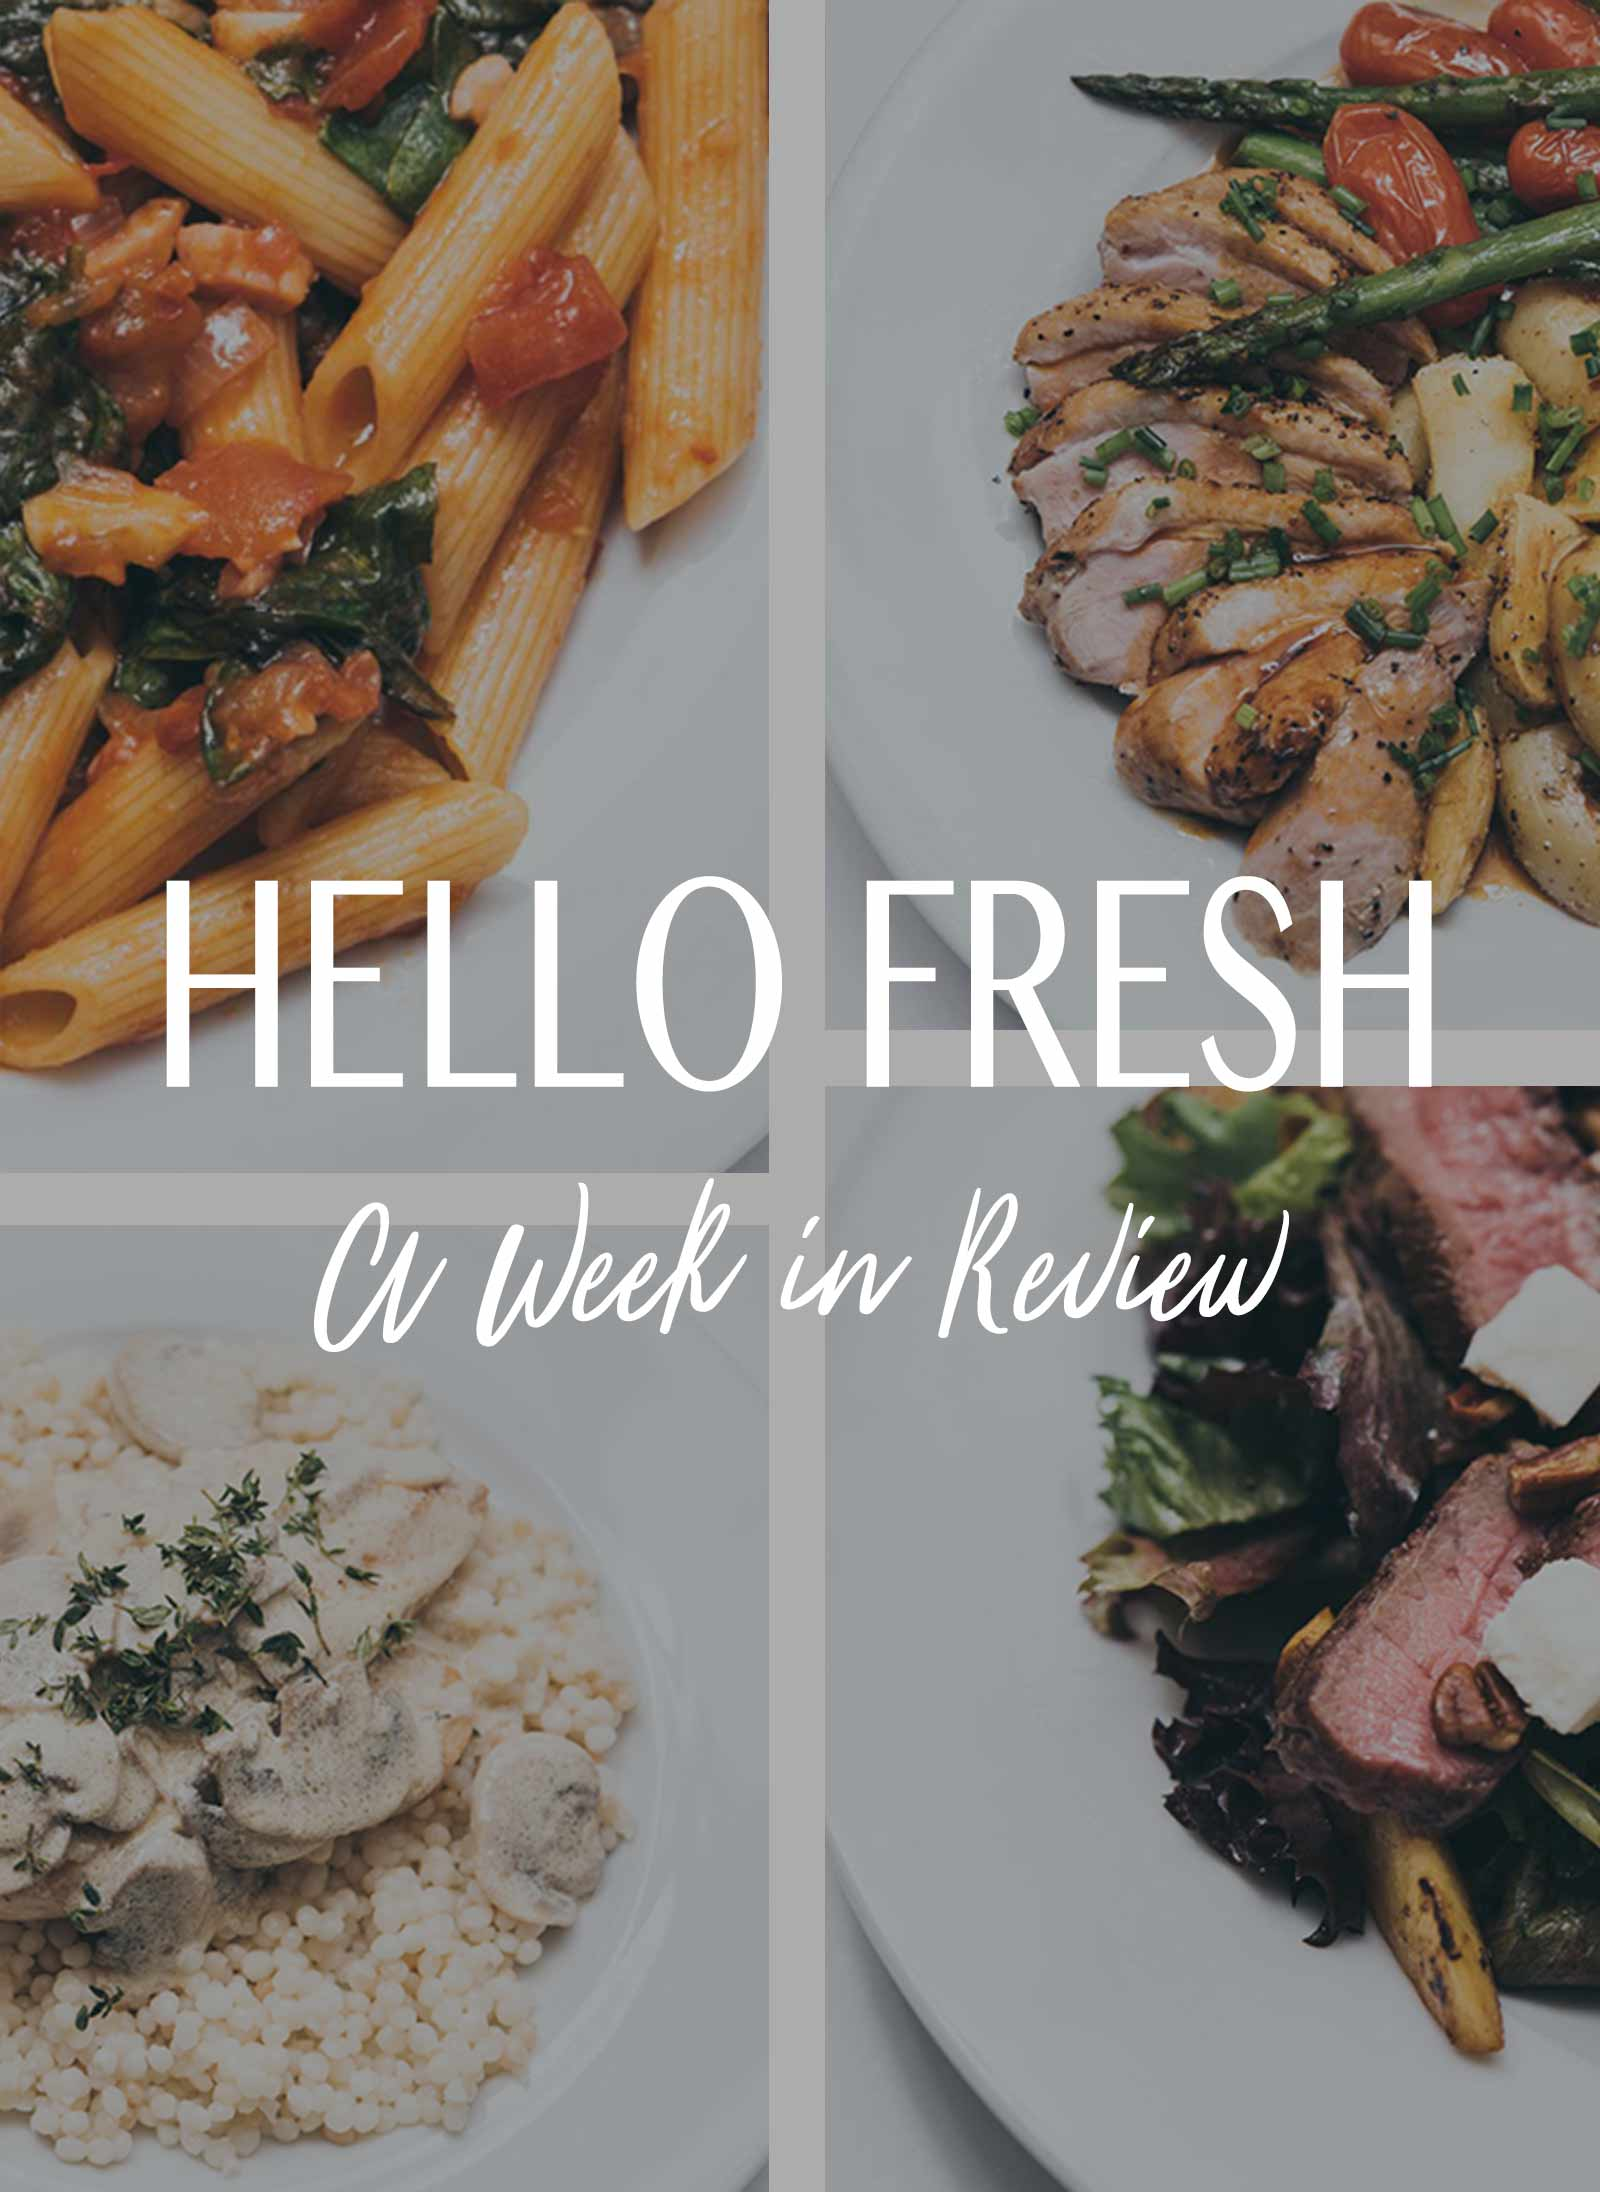 Meal Kit Delivery Service Hellofresh  Coupons Vouchers 2020